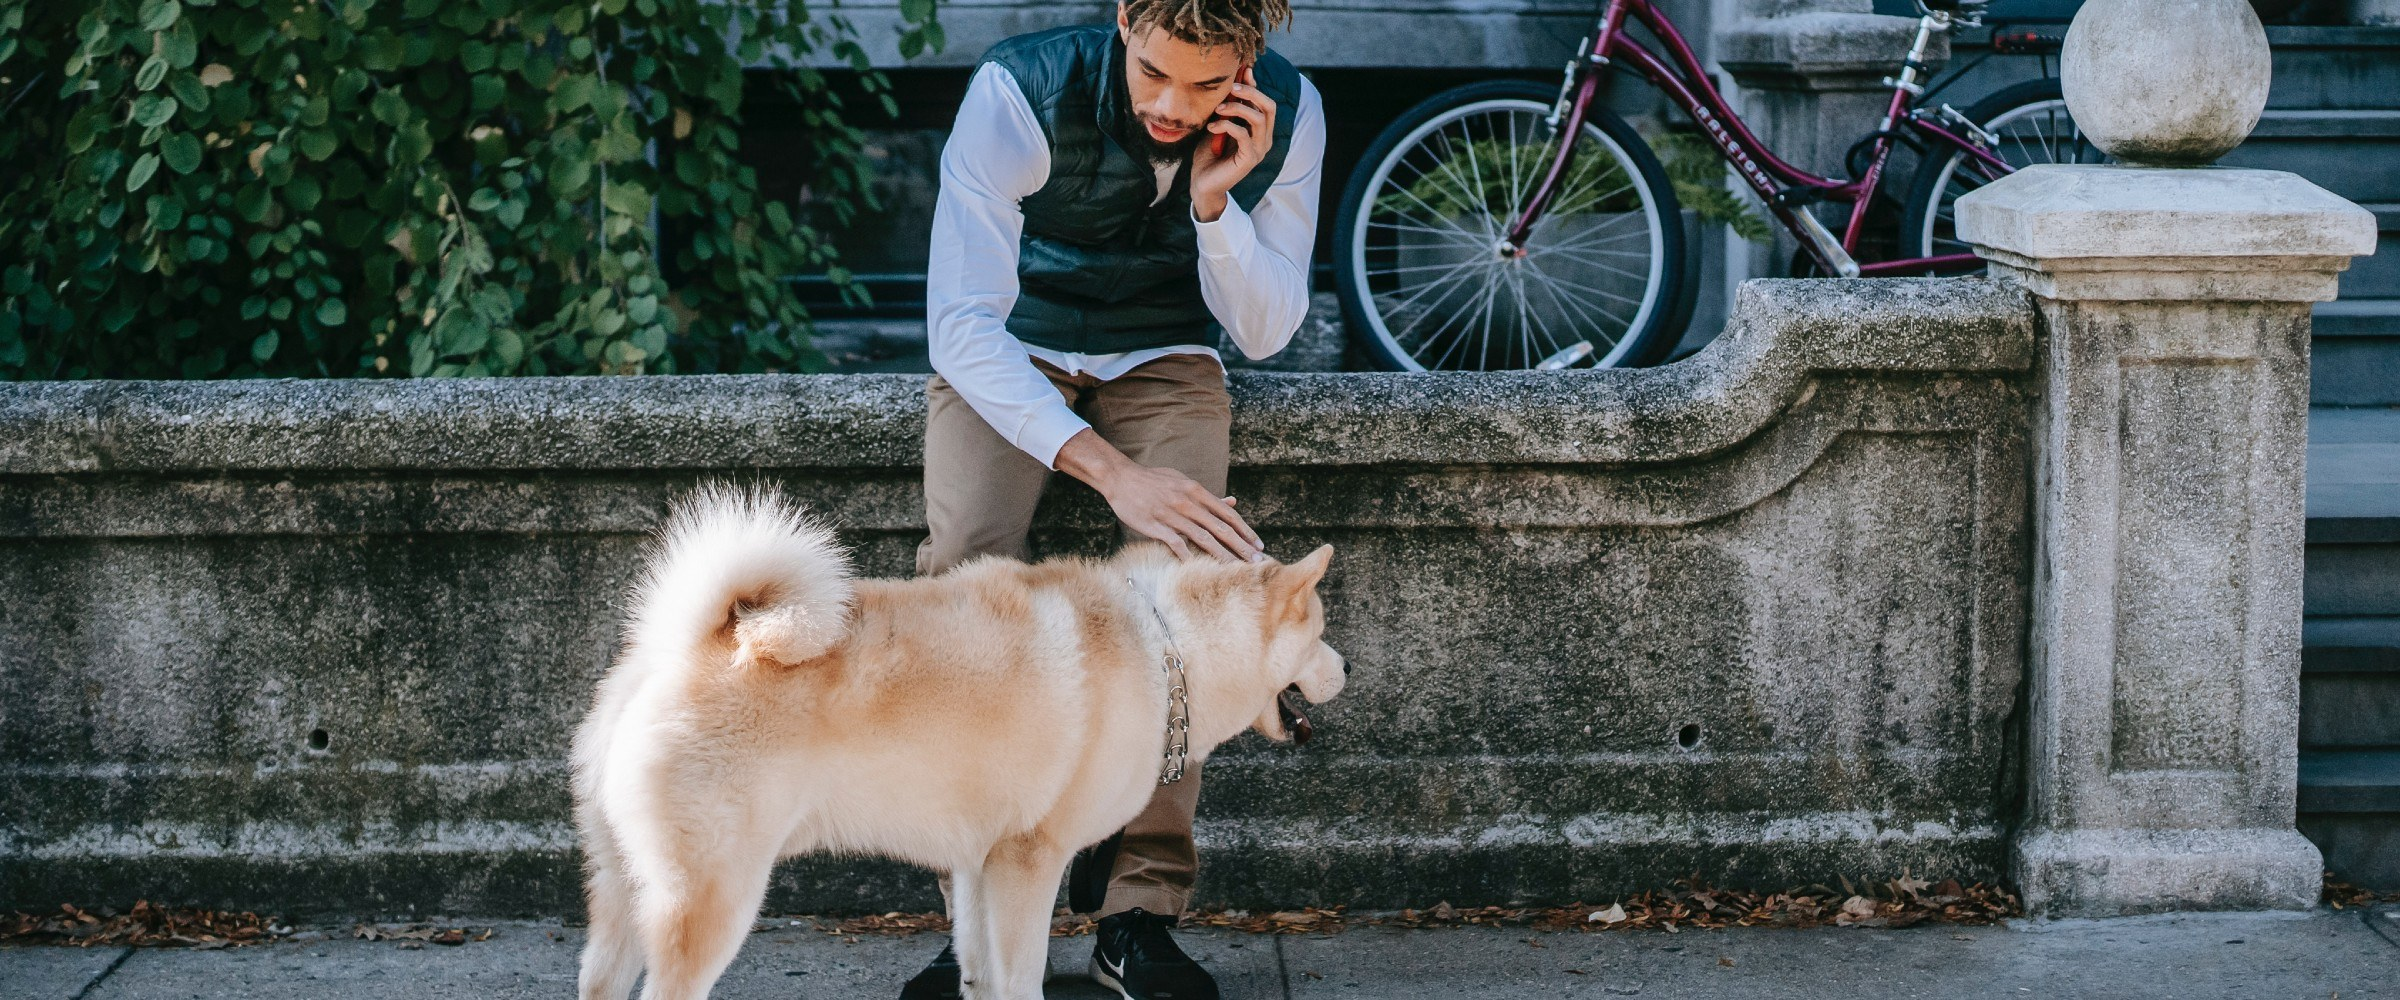 best neighborhoods in DC for dog owners